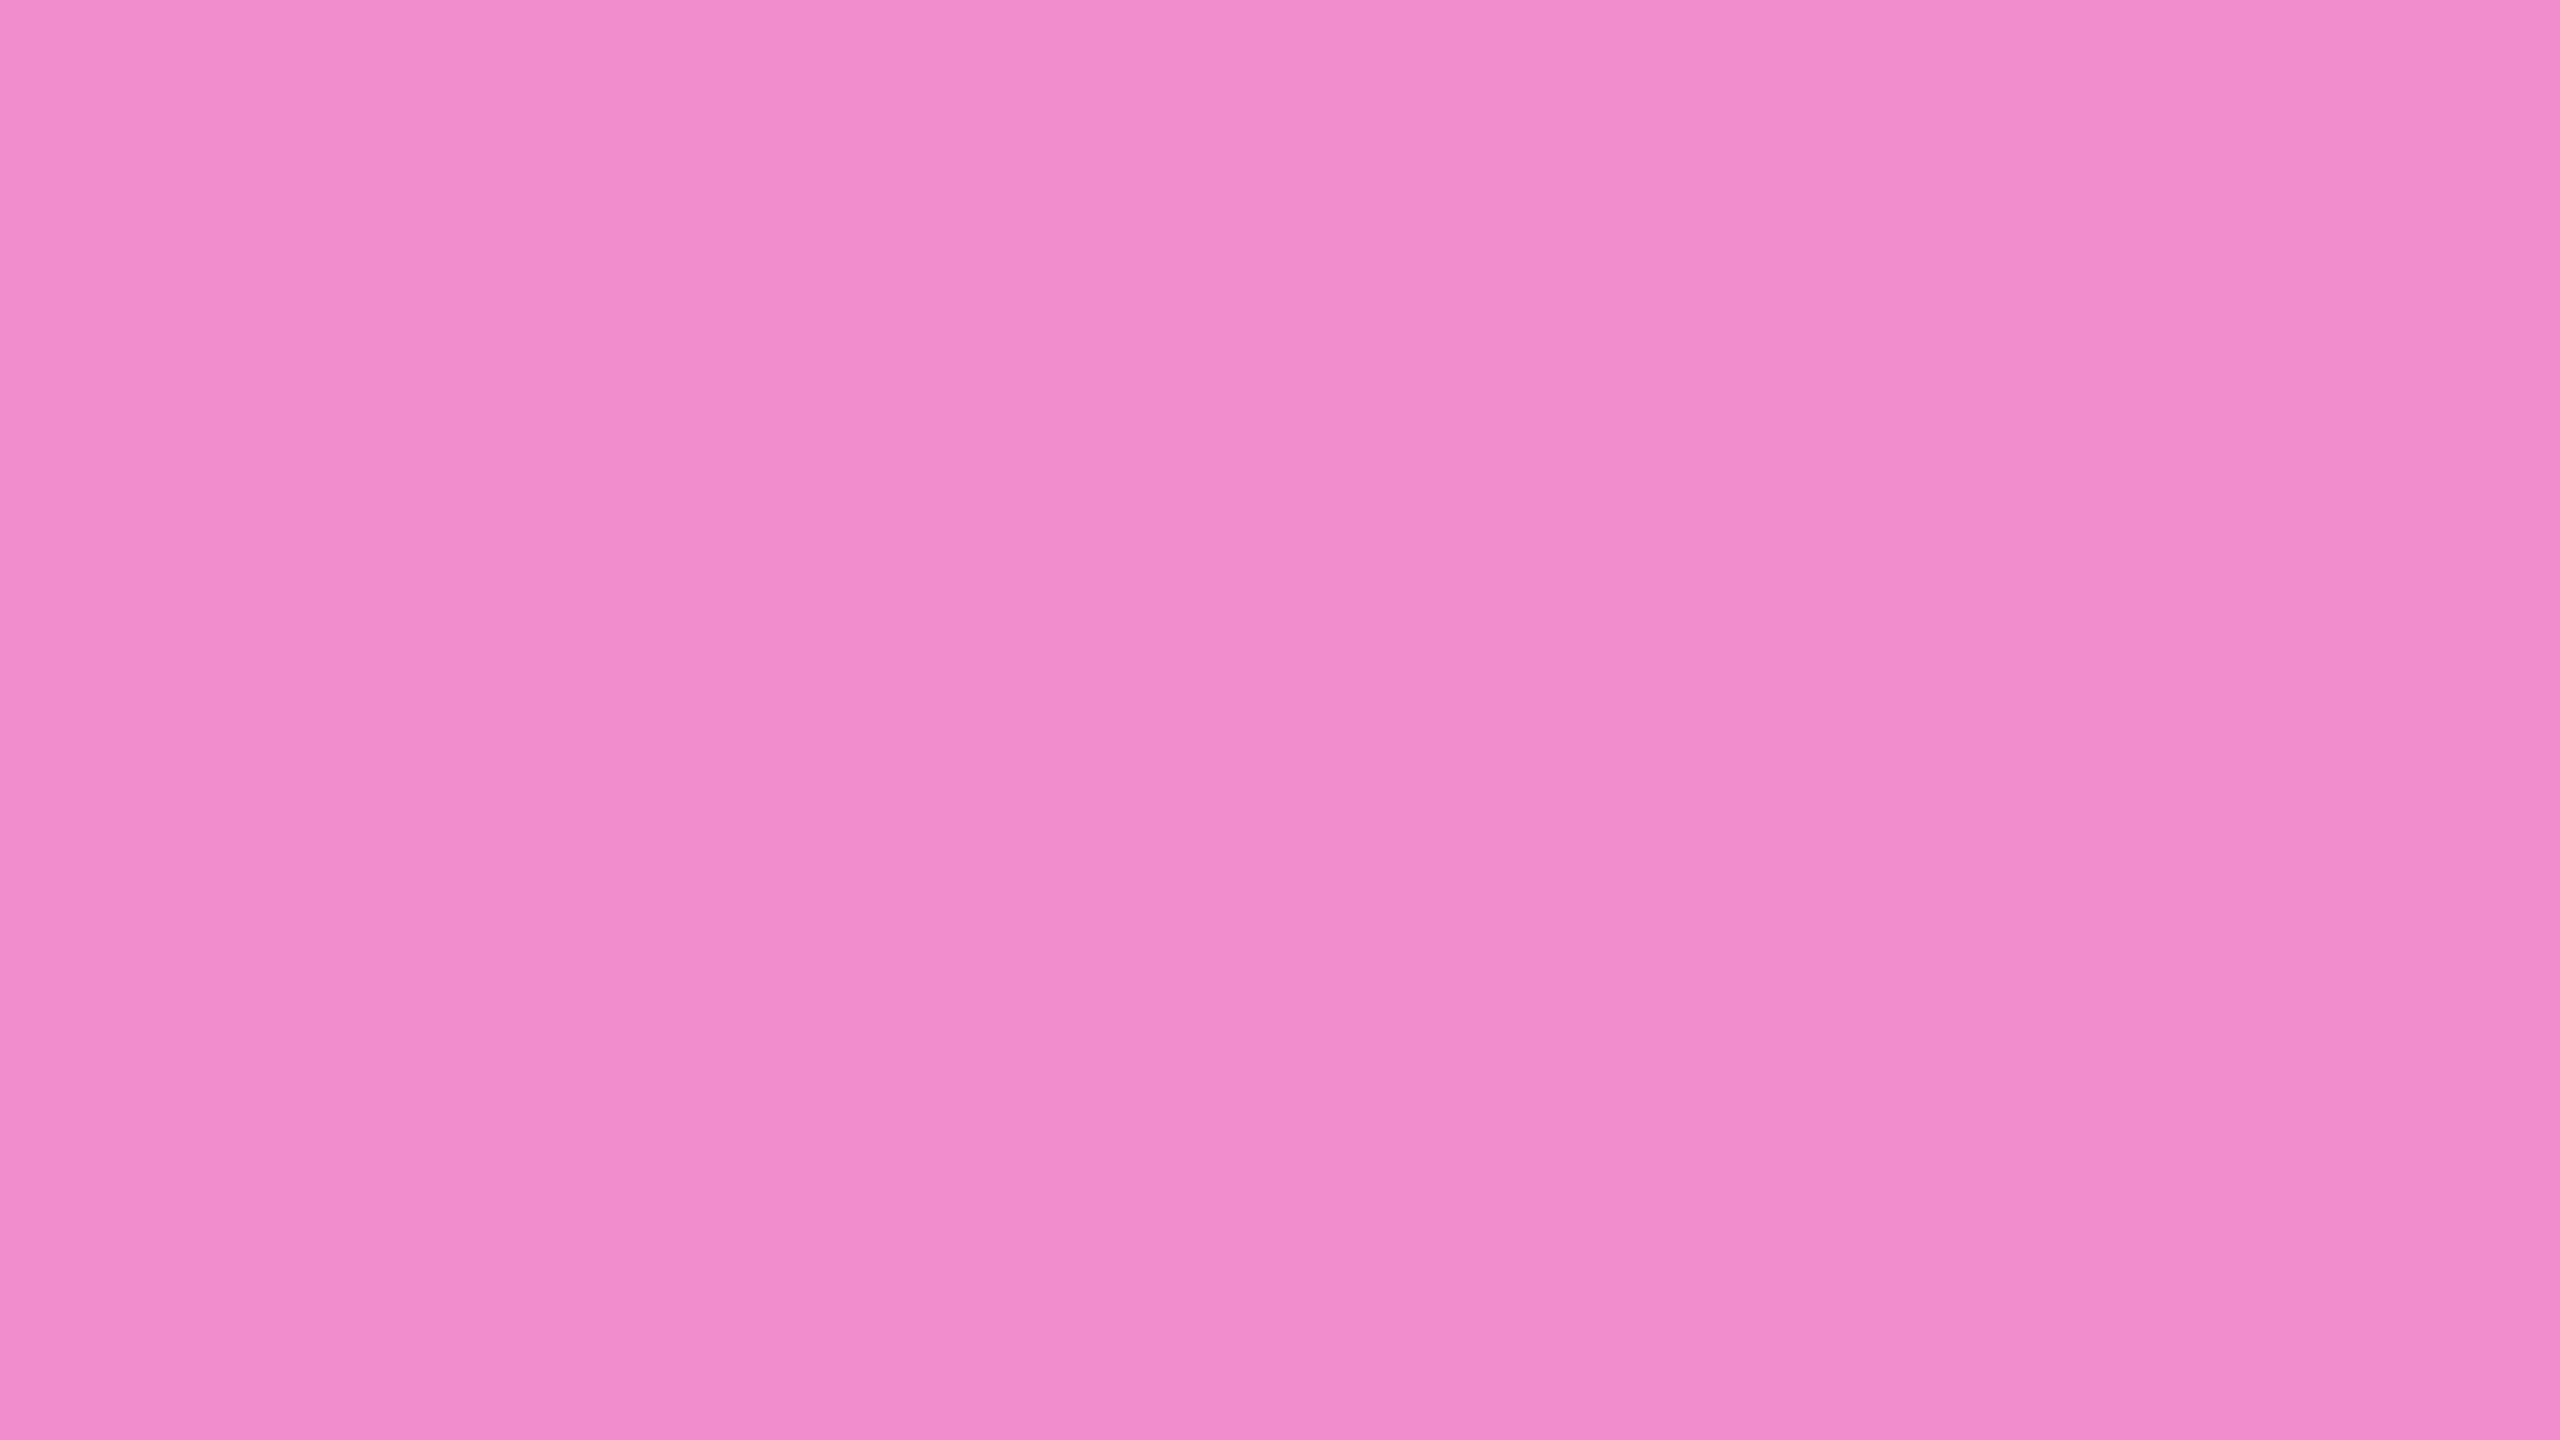 Orchid Pink Solid Color Background